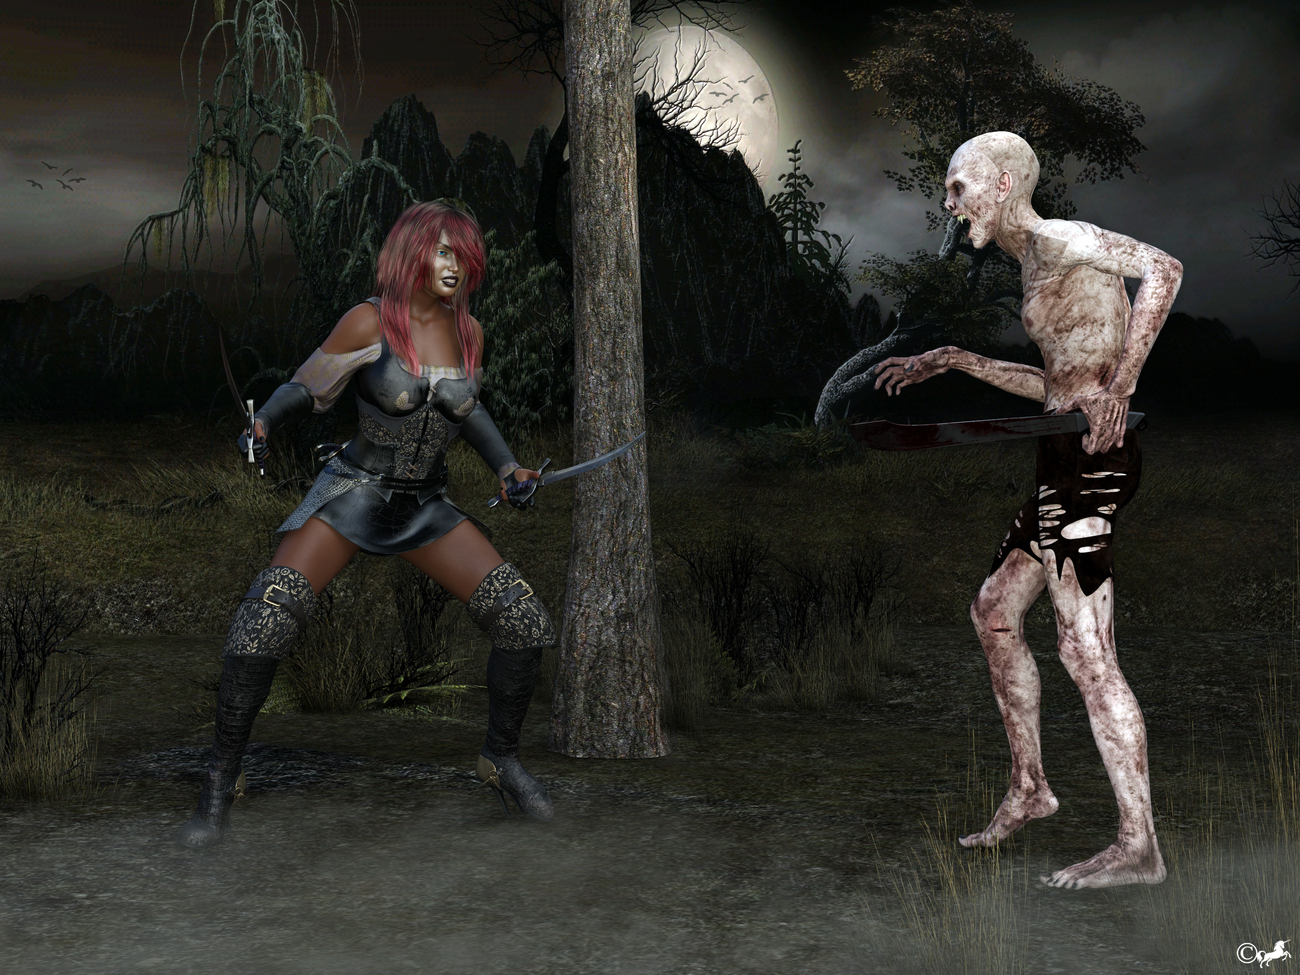 DAZ 1086 or The Night of the living death by miwi